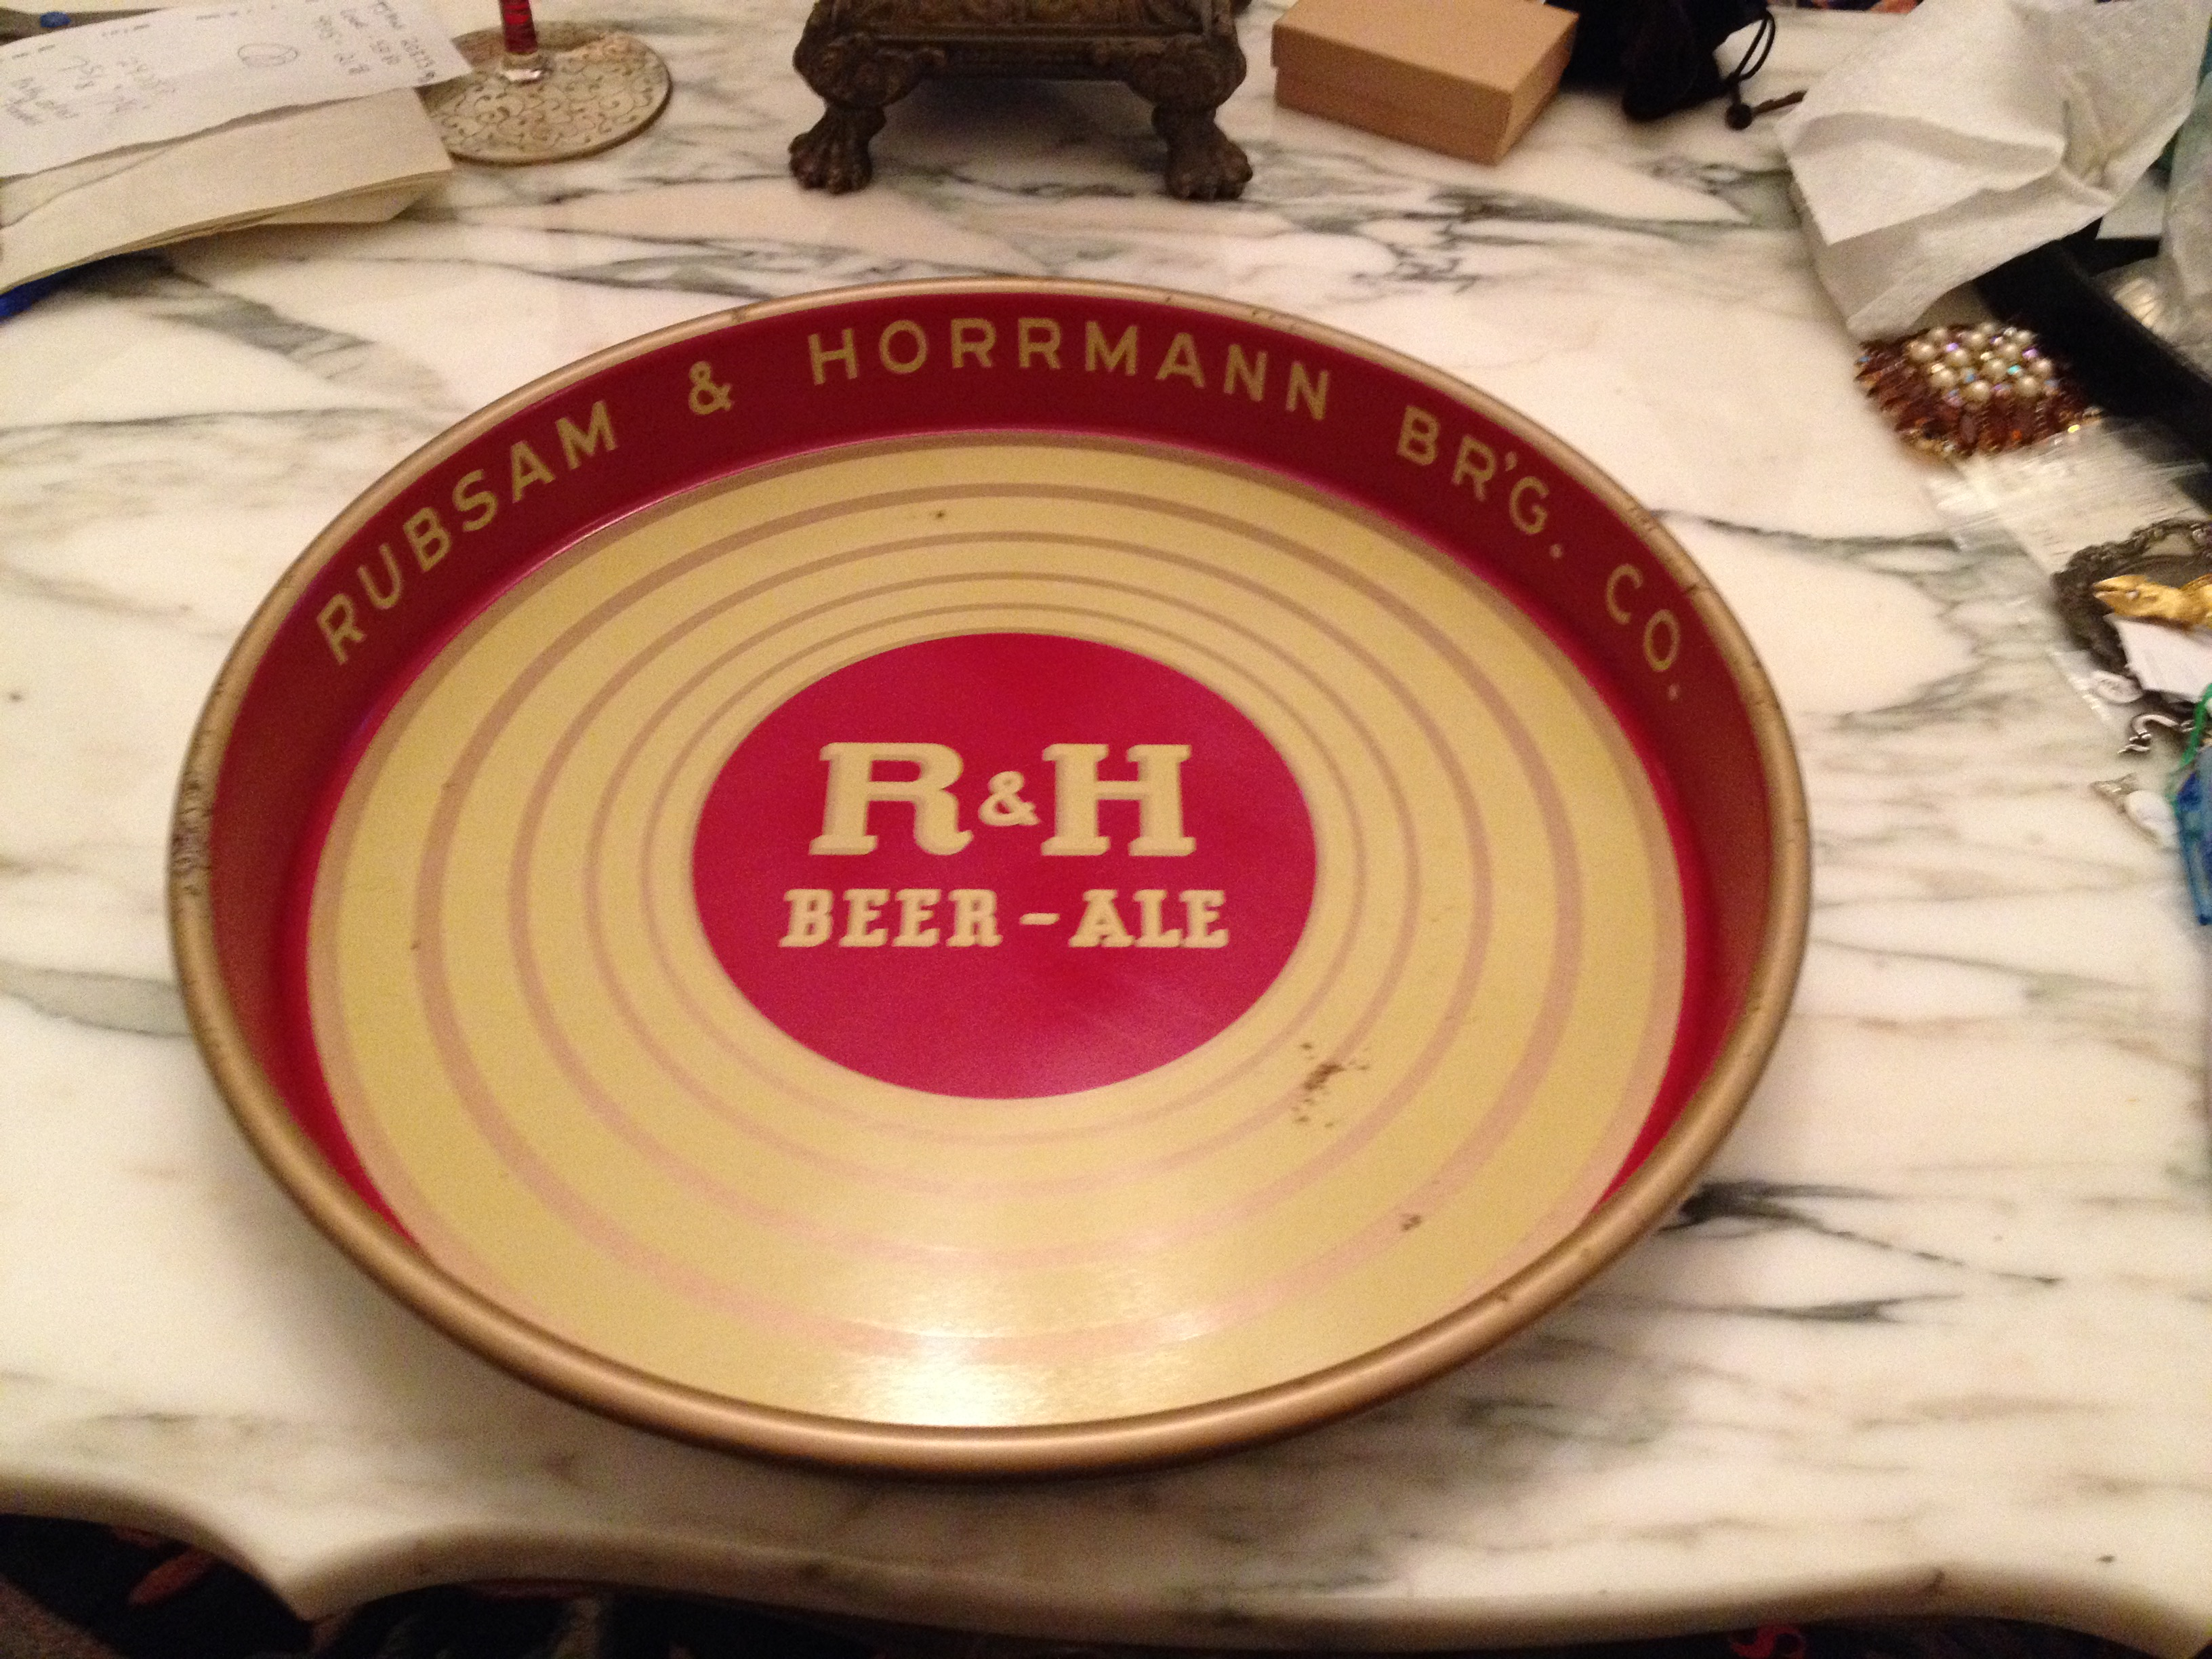 R&H Beer-Ale Collectable Tray